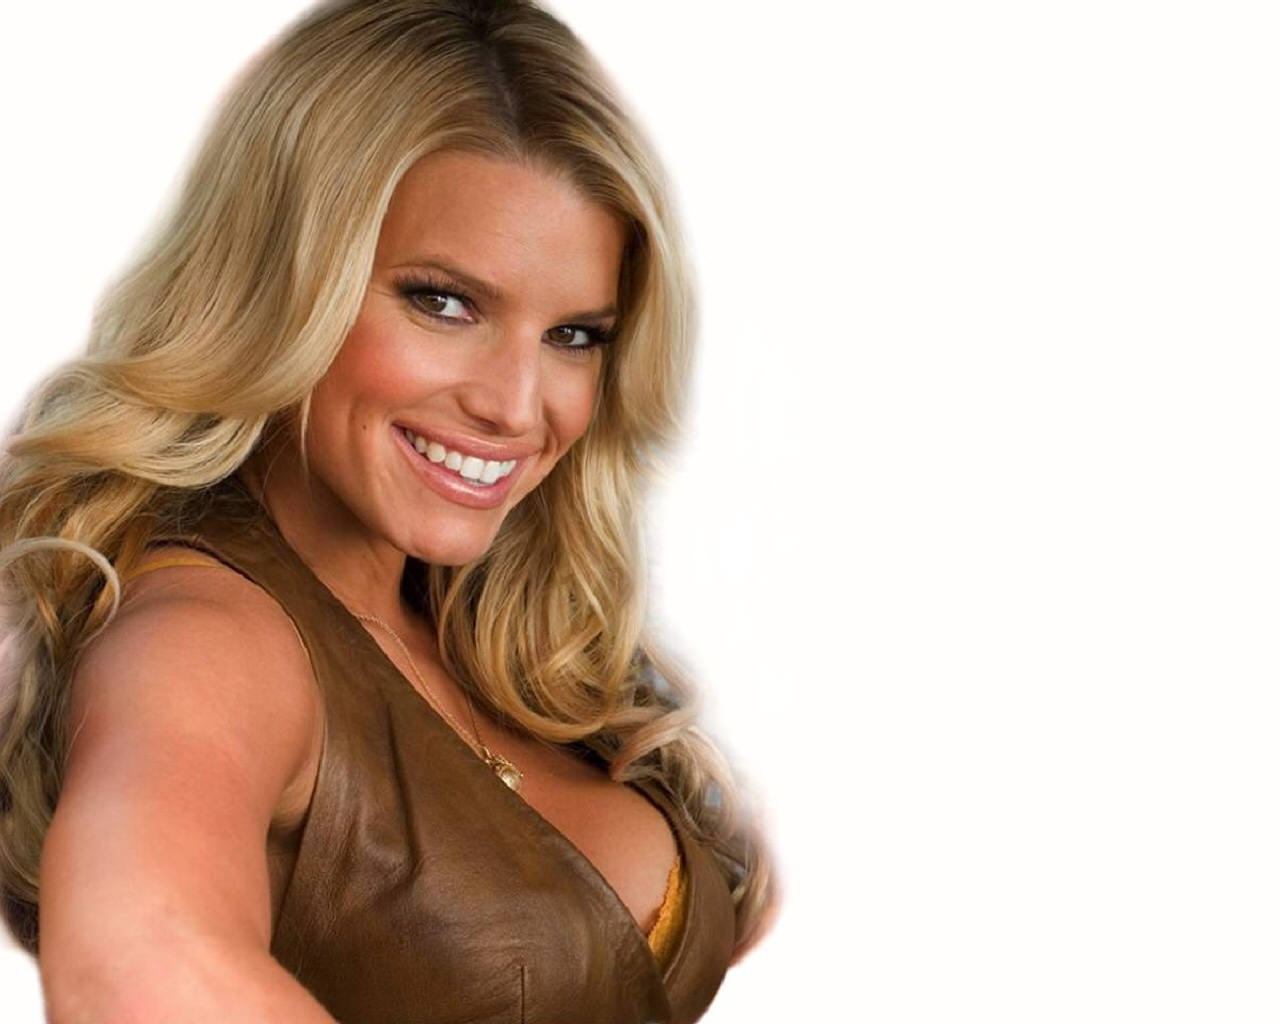 Jessica Simpson images Jessica Simpson wallpaper photos 151235 1280x1024